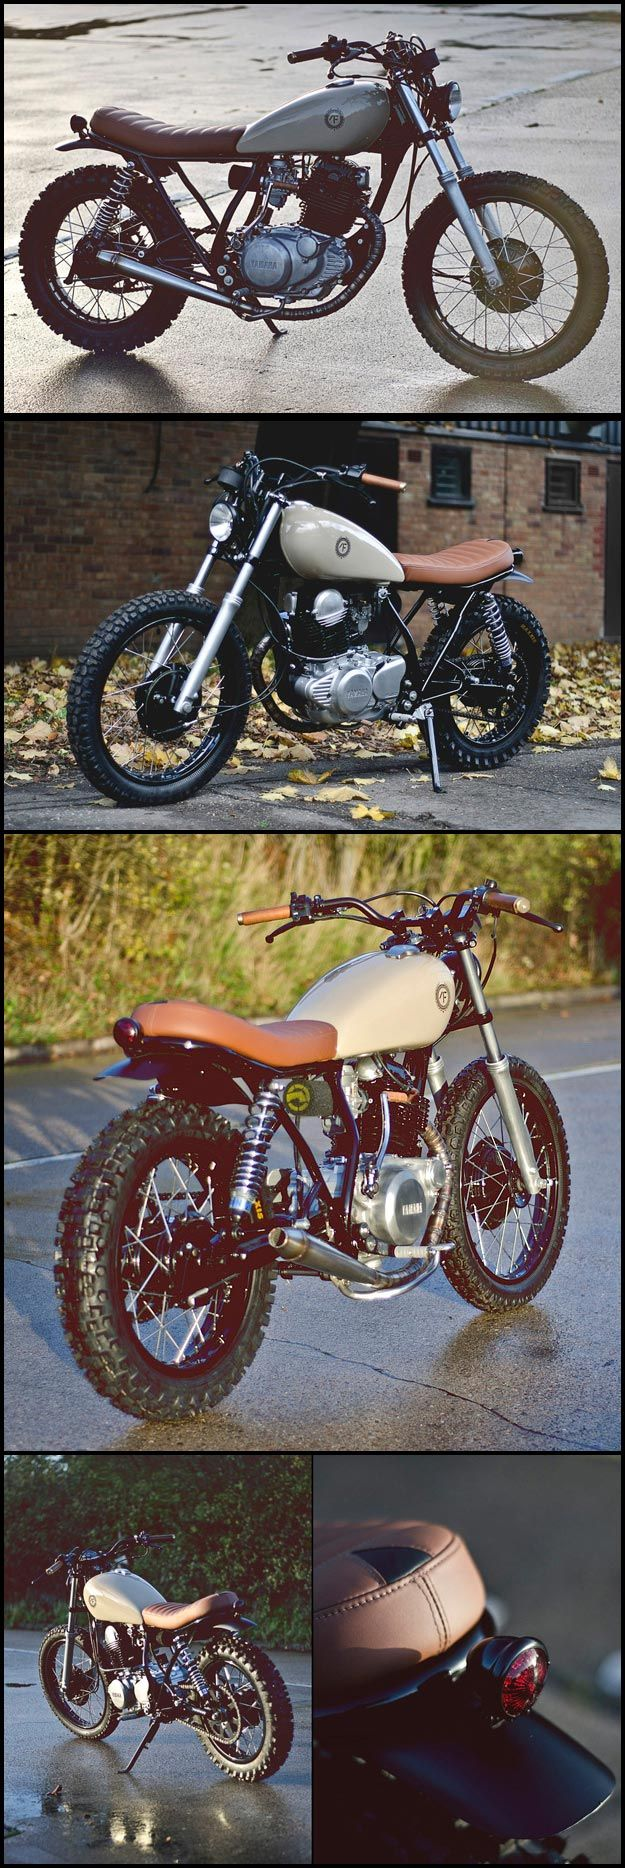 Yamaha sr250 by auto fabrica cafes scrambler and custom bikes yamaha sr250 by auto fabrica sciox Image collections